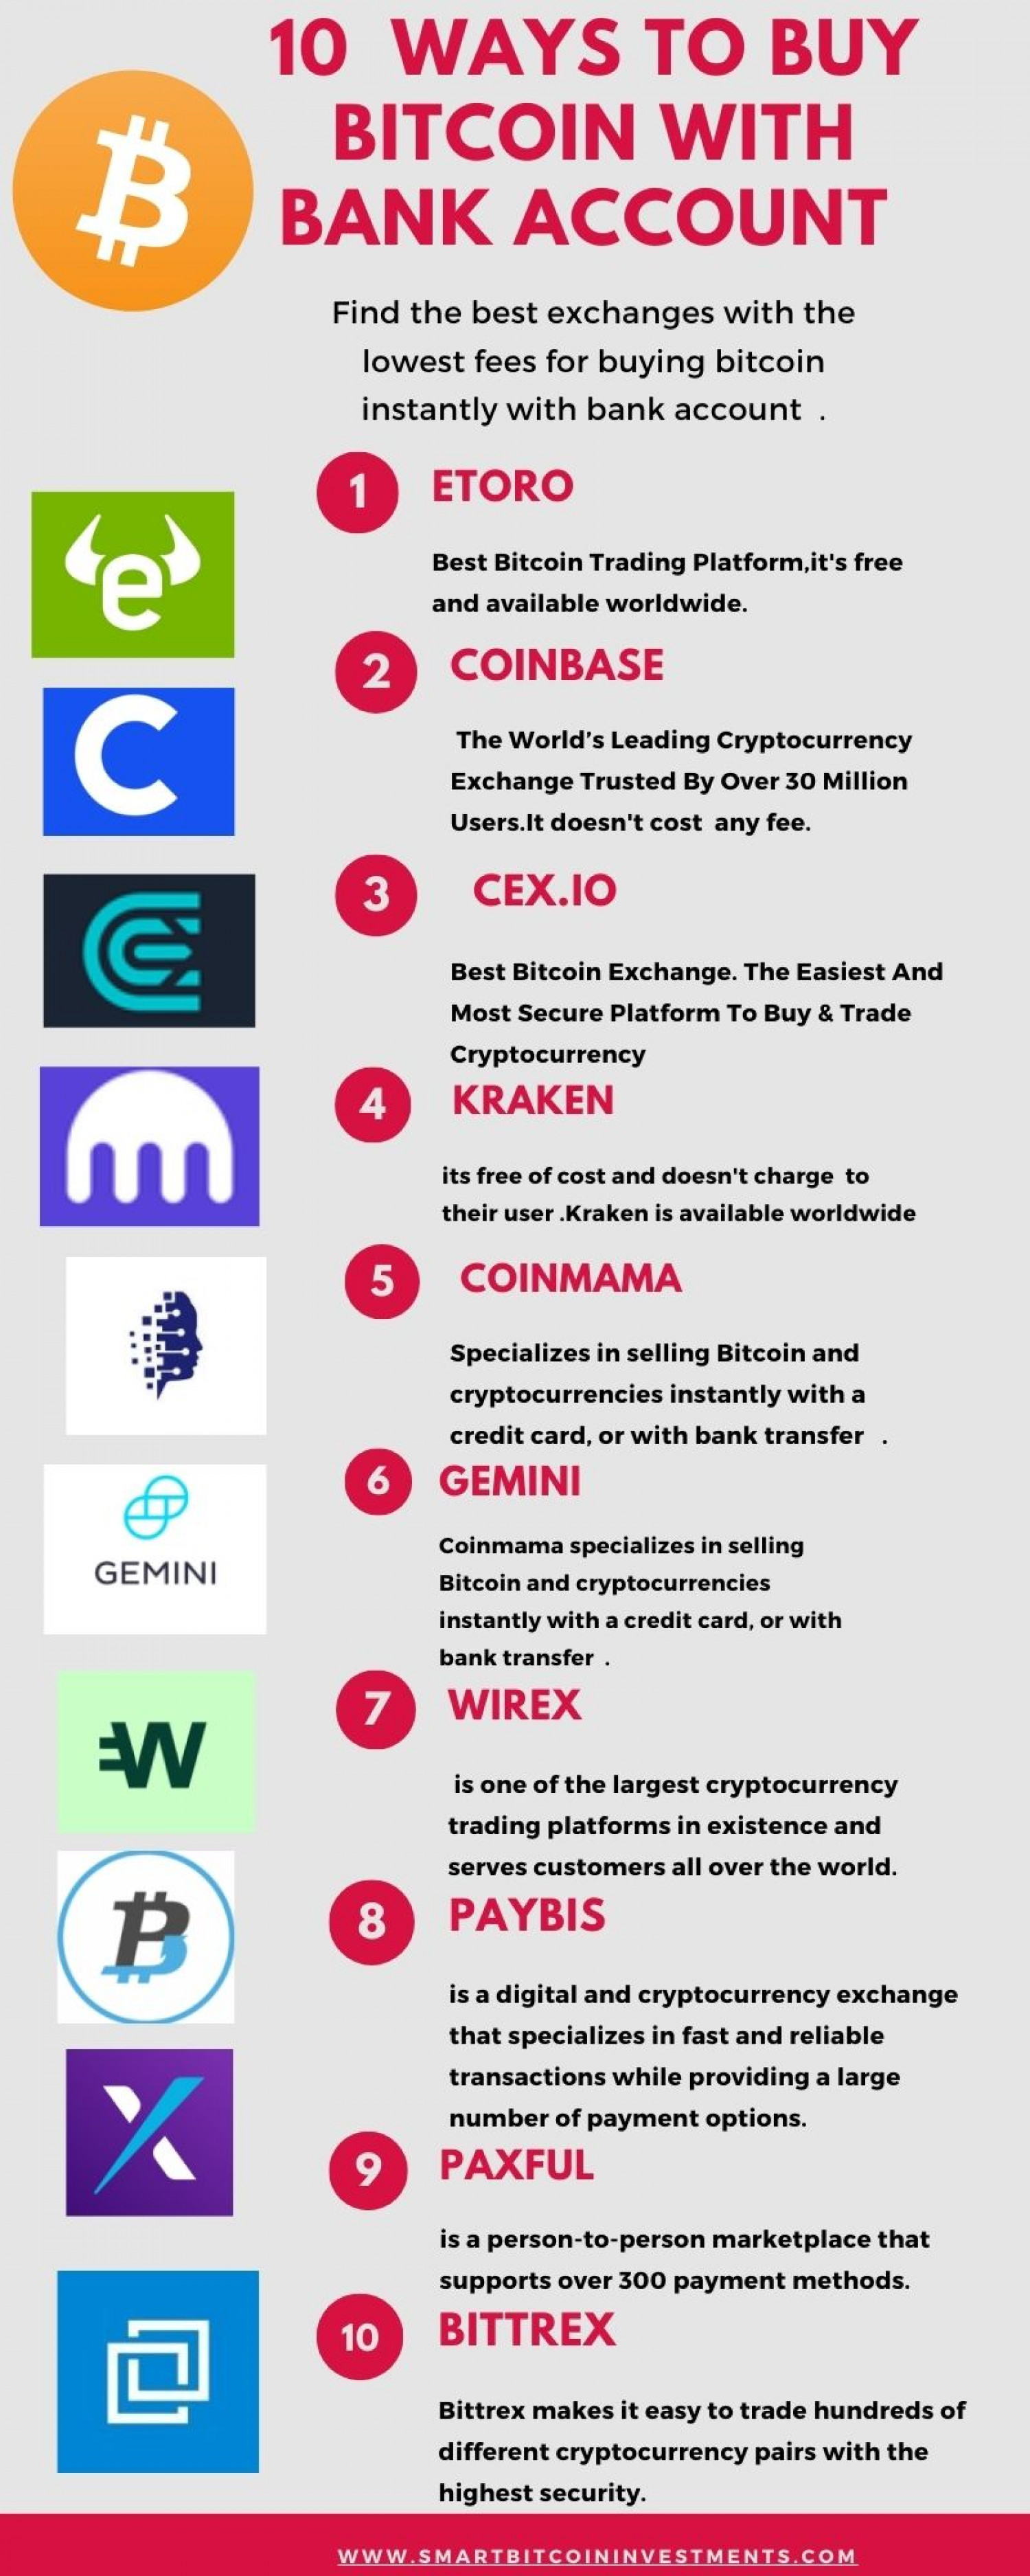 10 Ways To Buy Bitcoin With Bank Account Infographic